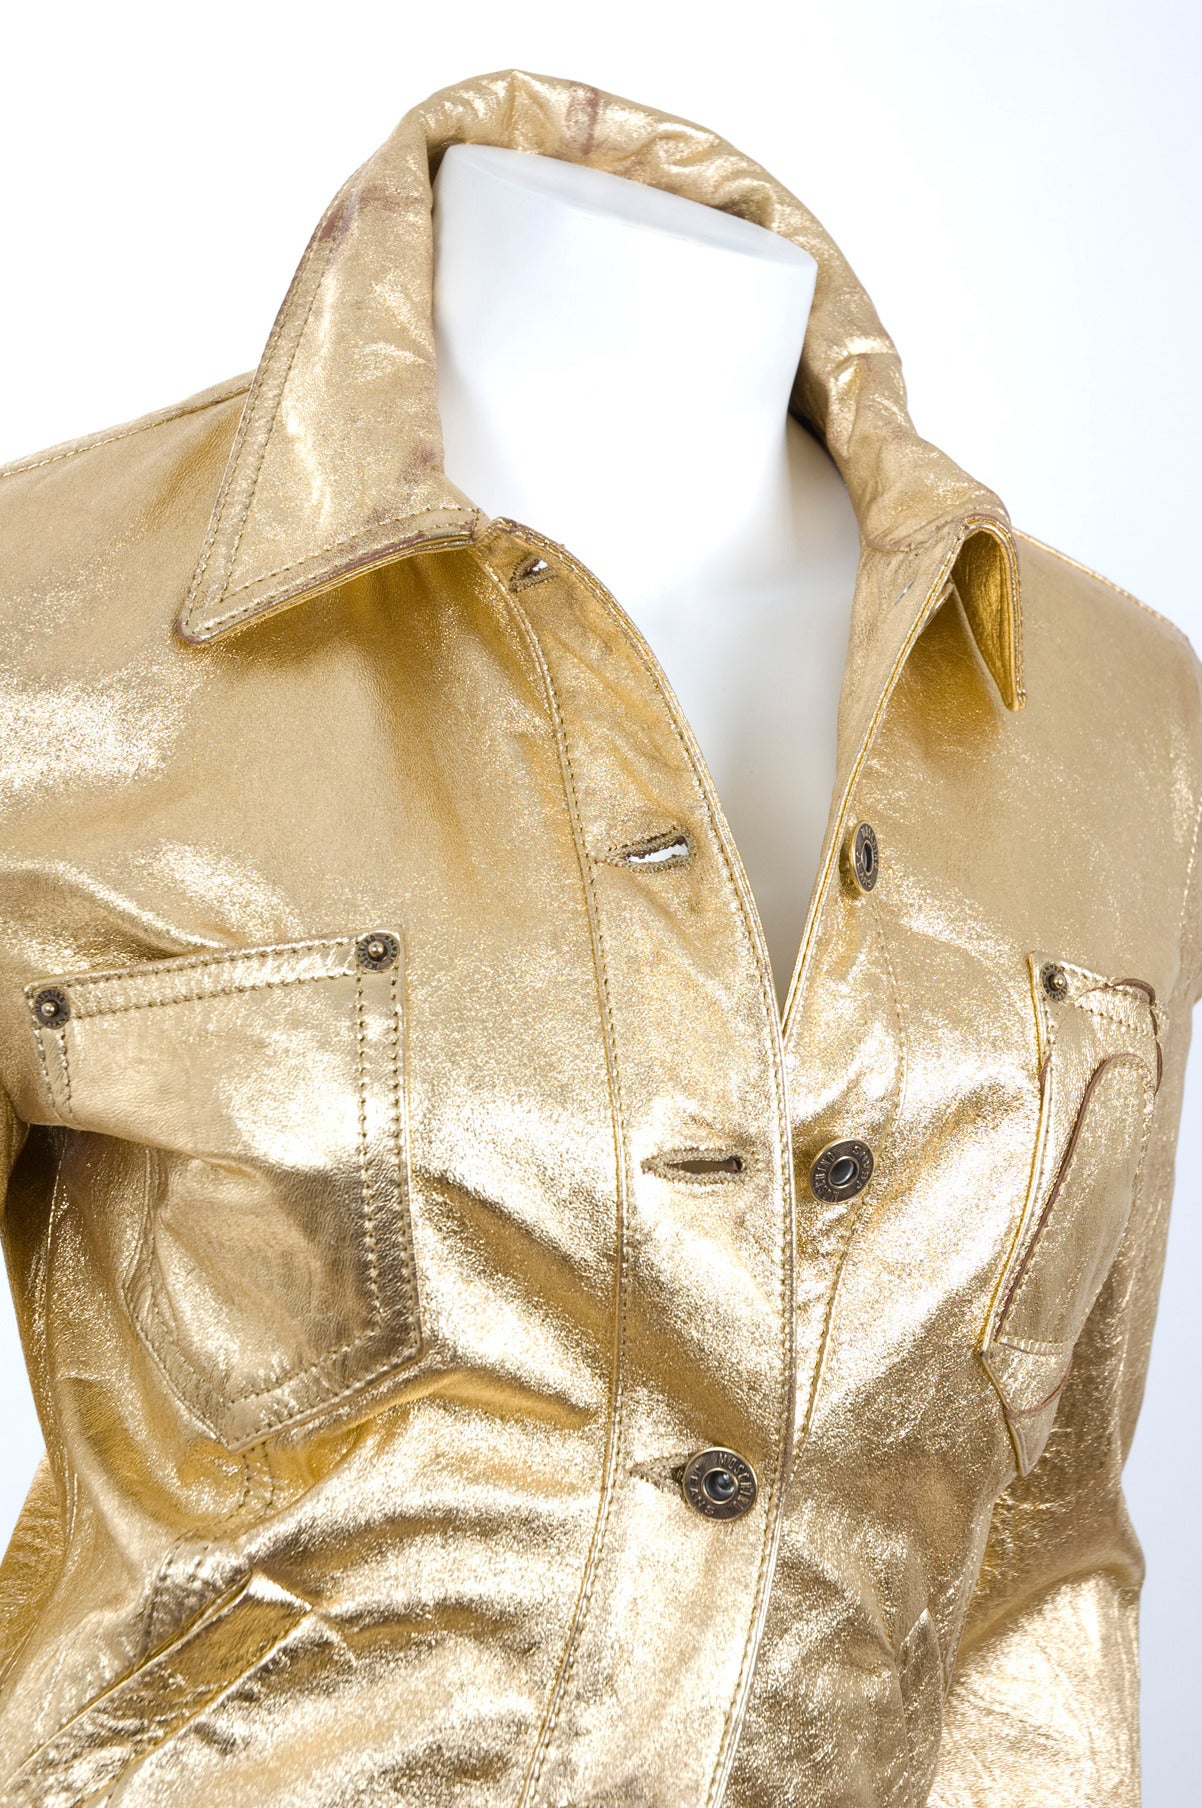 80's  Moschino Jeans Gold Leather Jacket For Sale 2